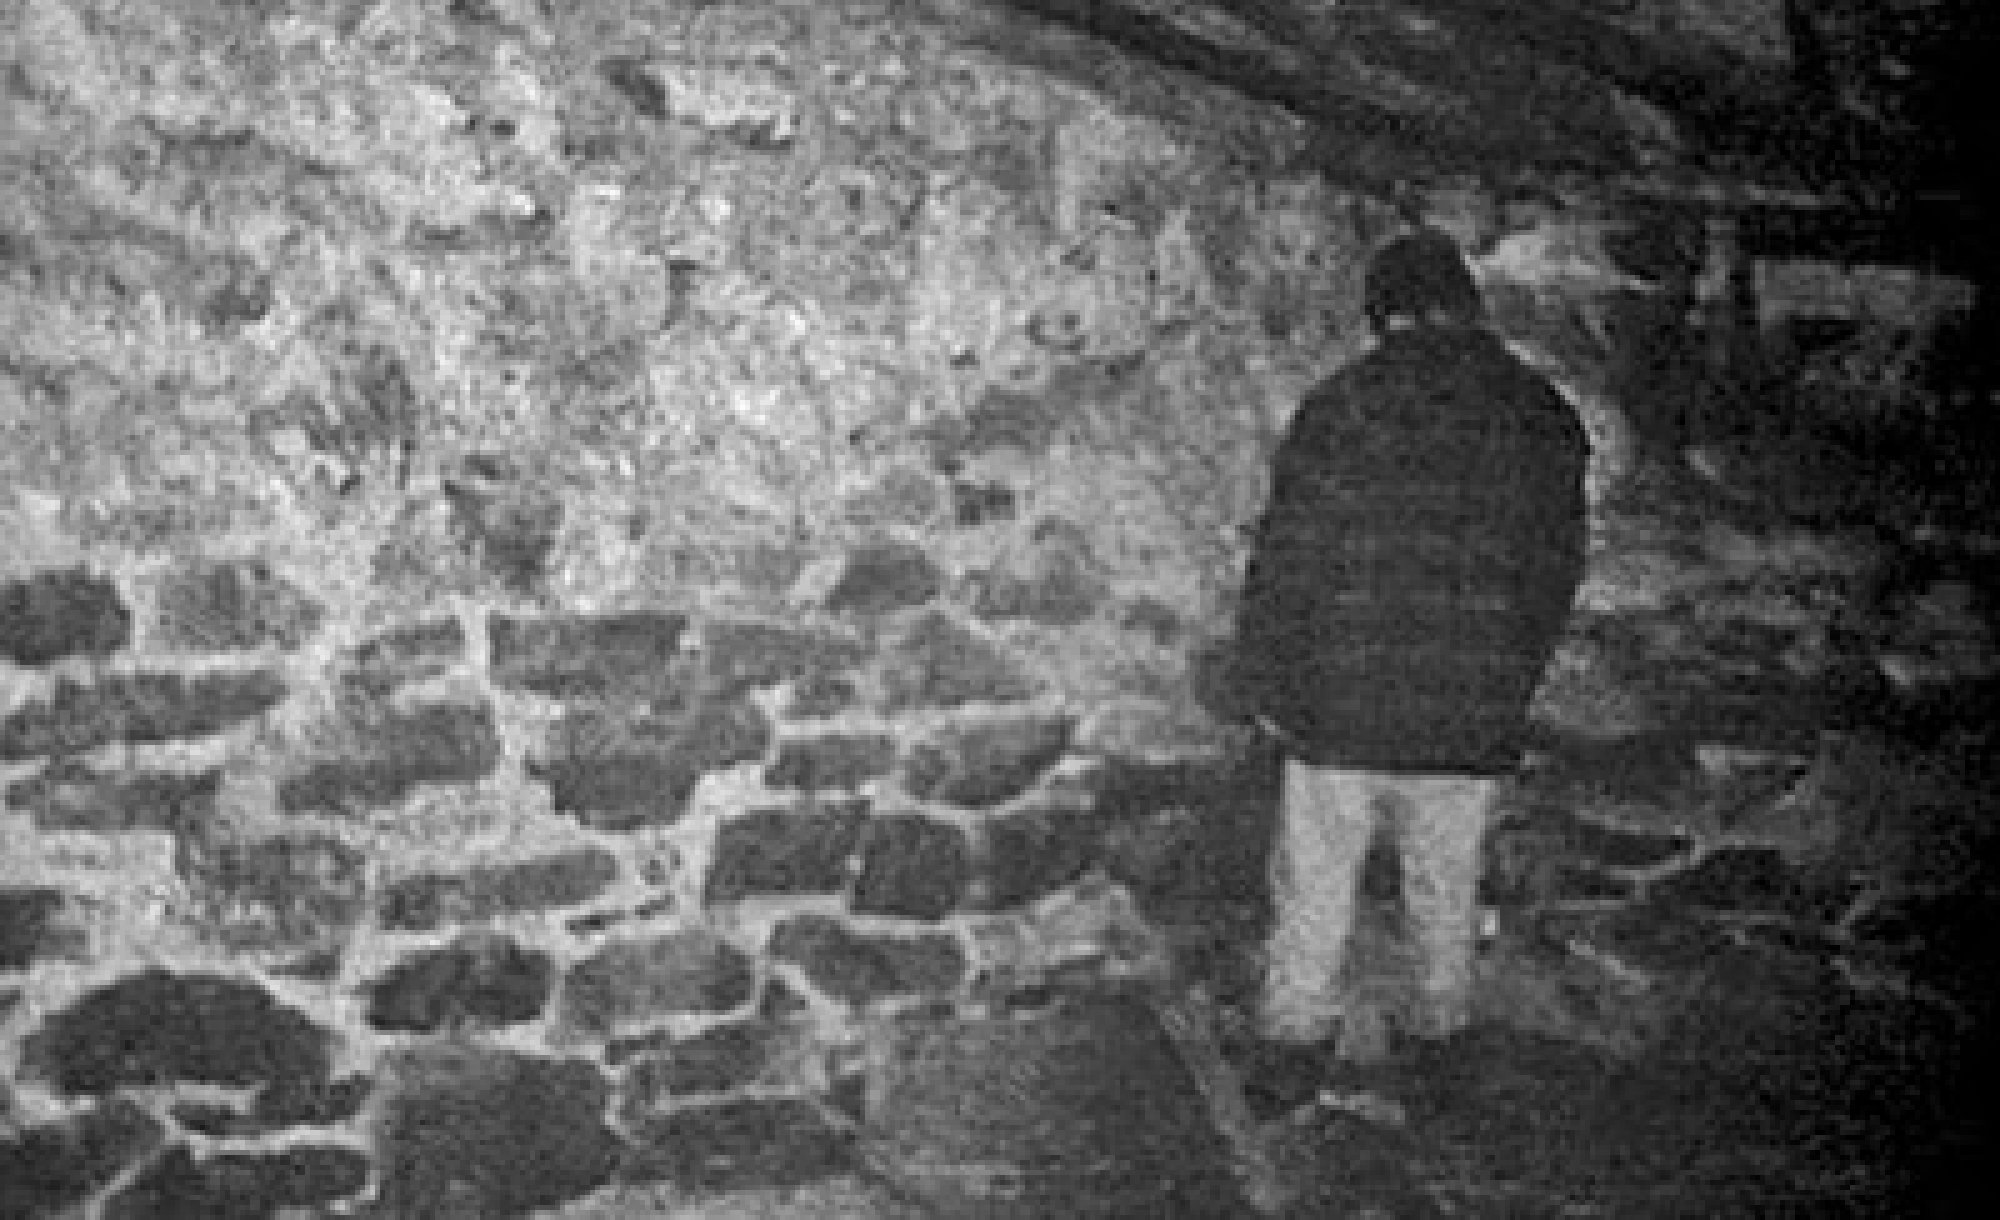 blair witch project Find great deals on ebay for the blair witch project shop with confidence.